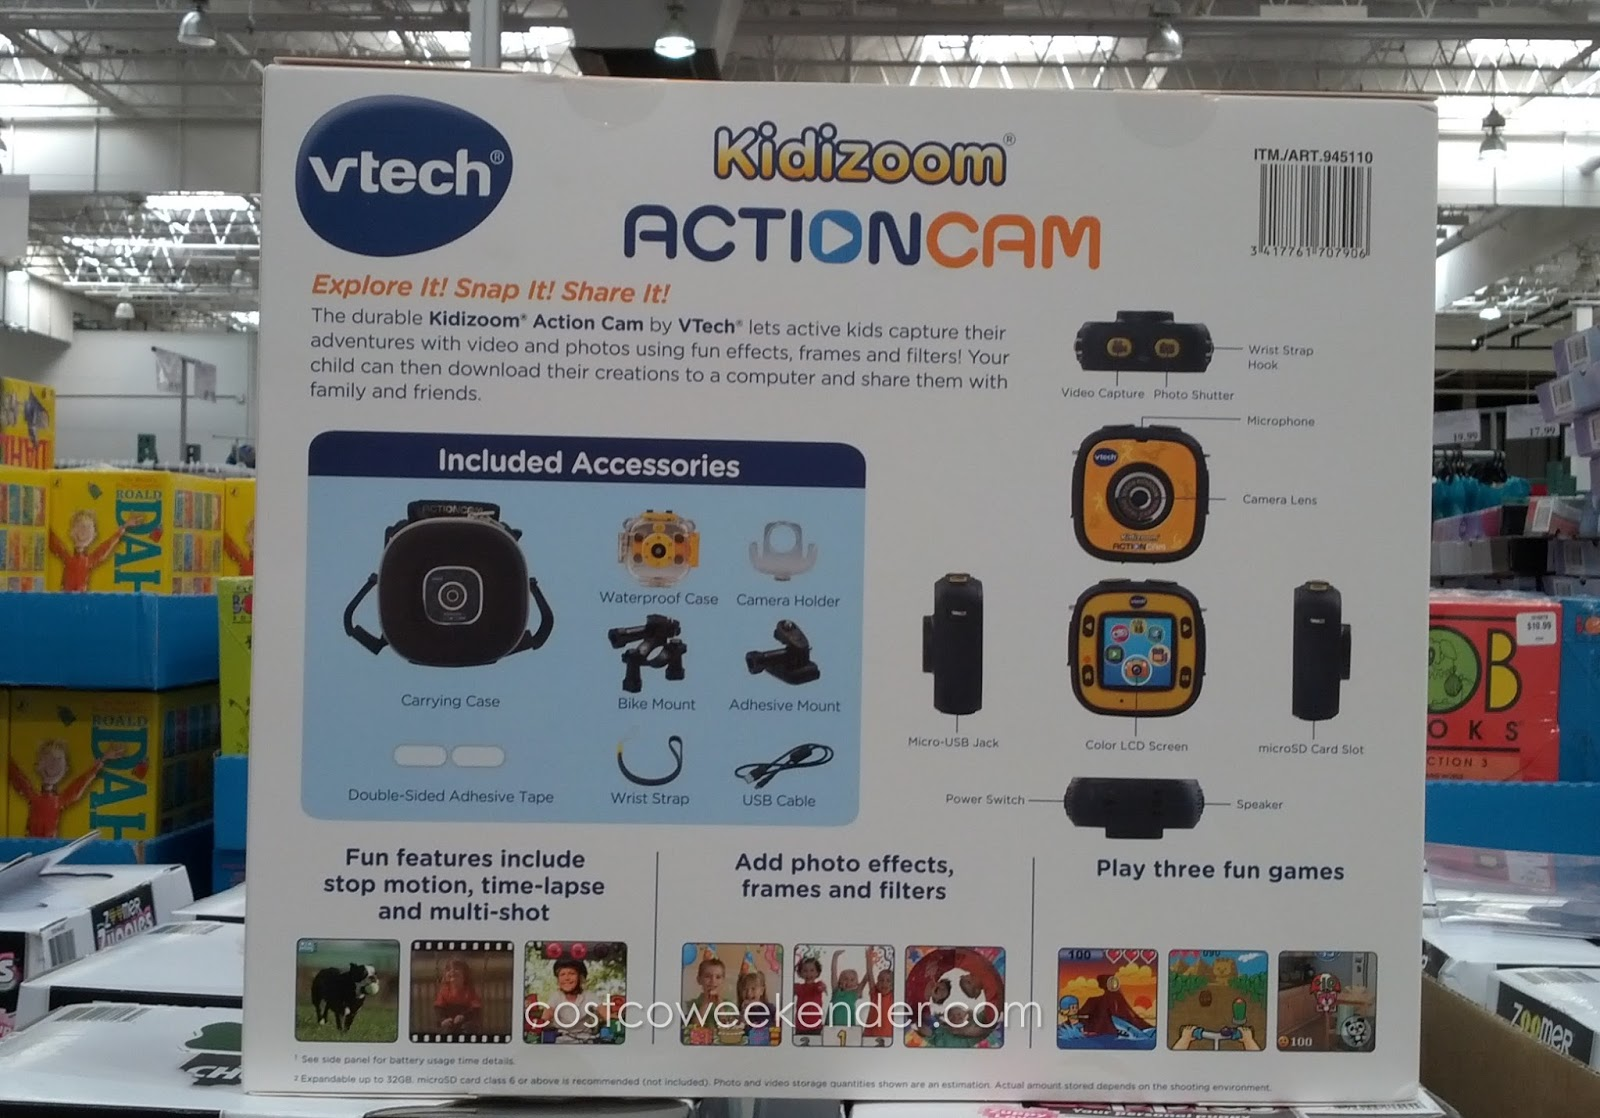 VTech Kidizoom Action Cam – Waterproof case and a bunch of mounting accessories